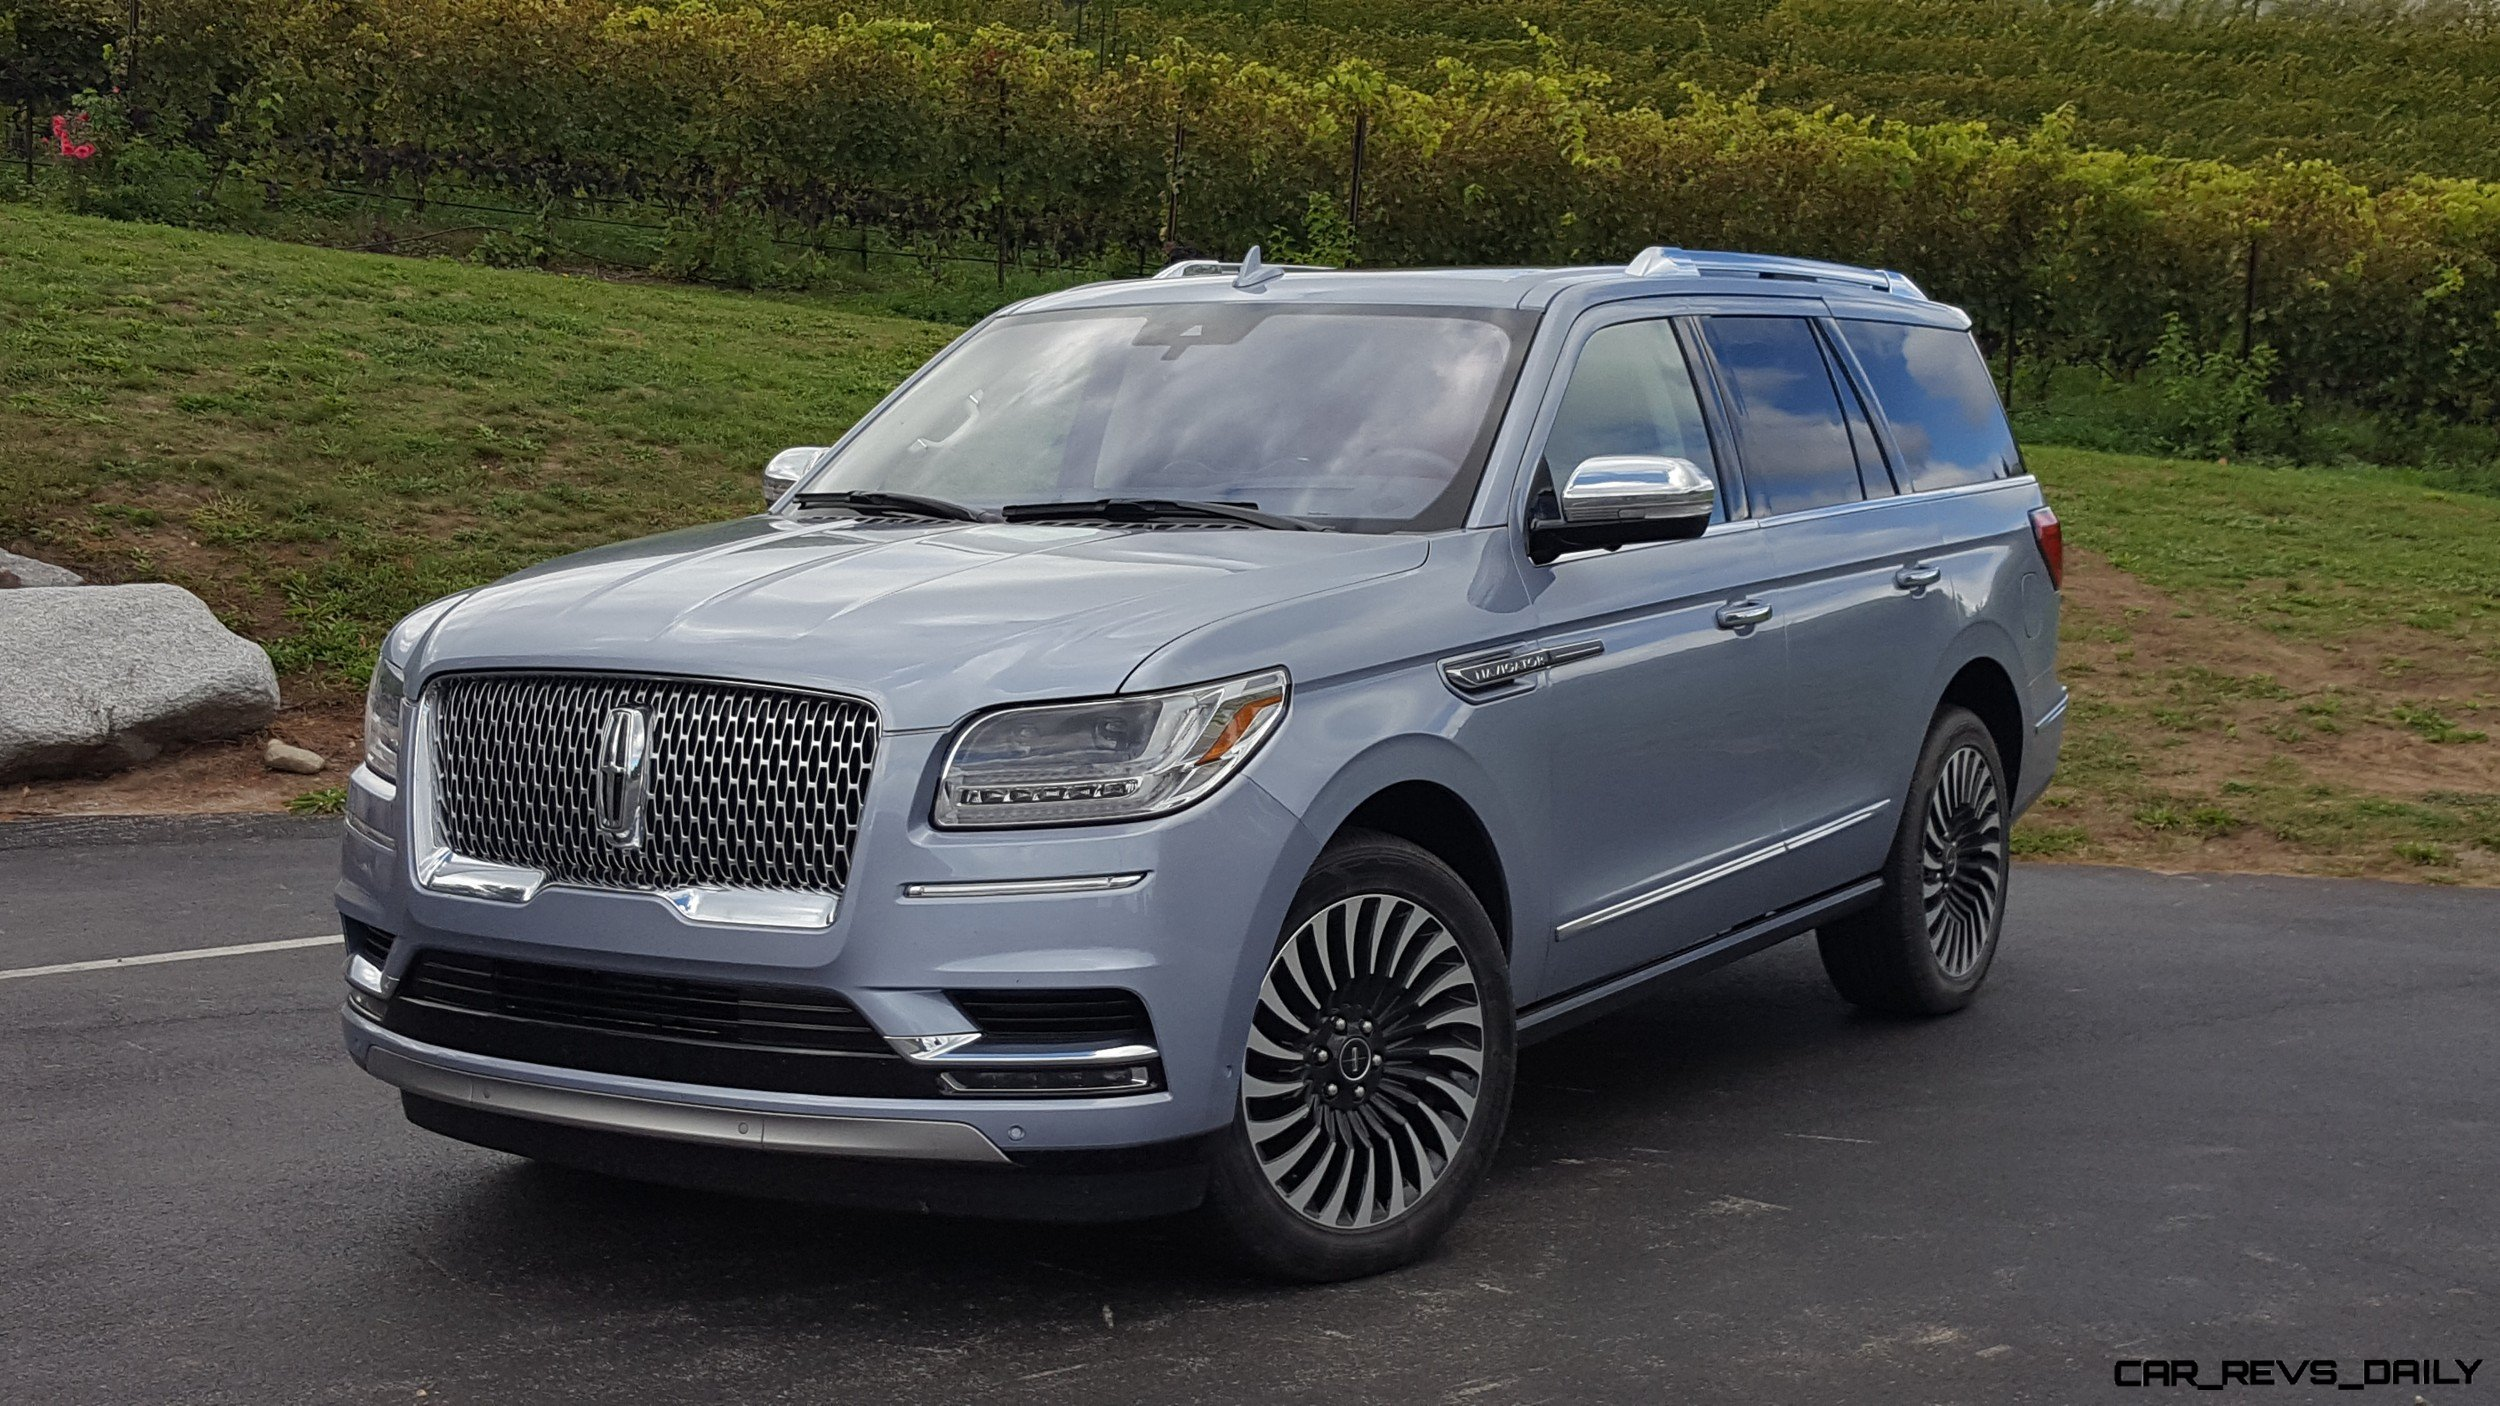 Road Test Review - 2018 Lincoln Navigator Black Label - By